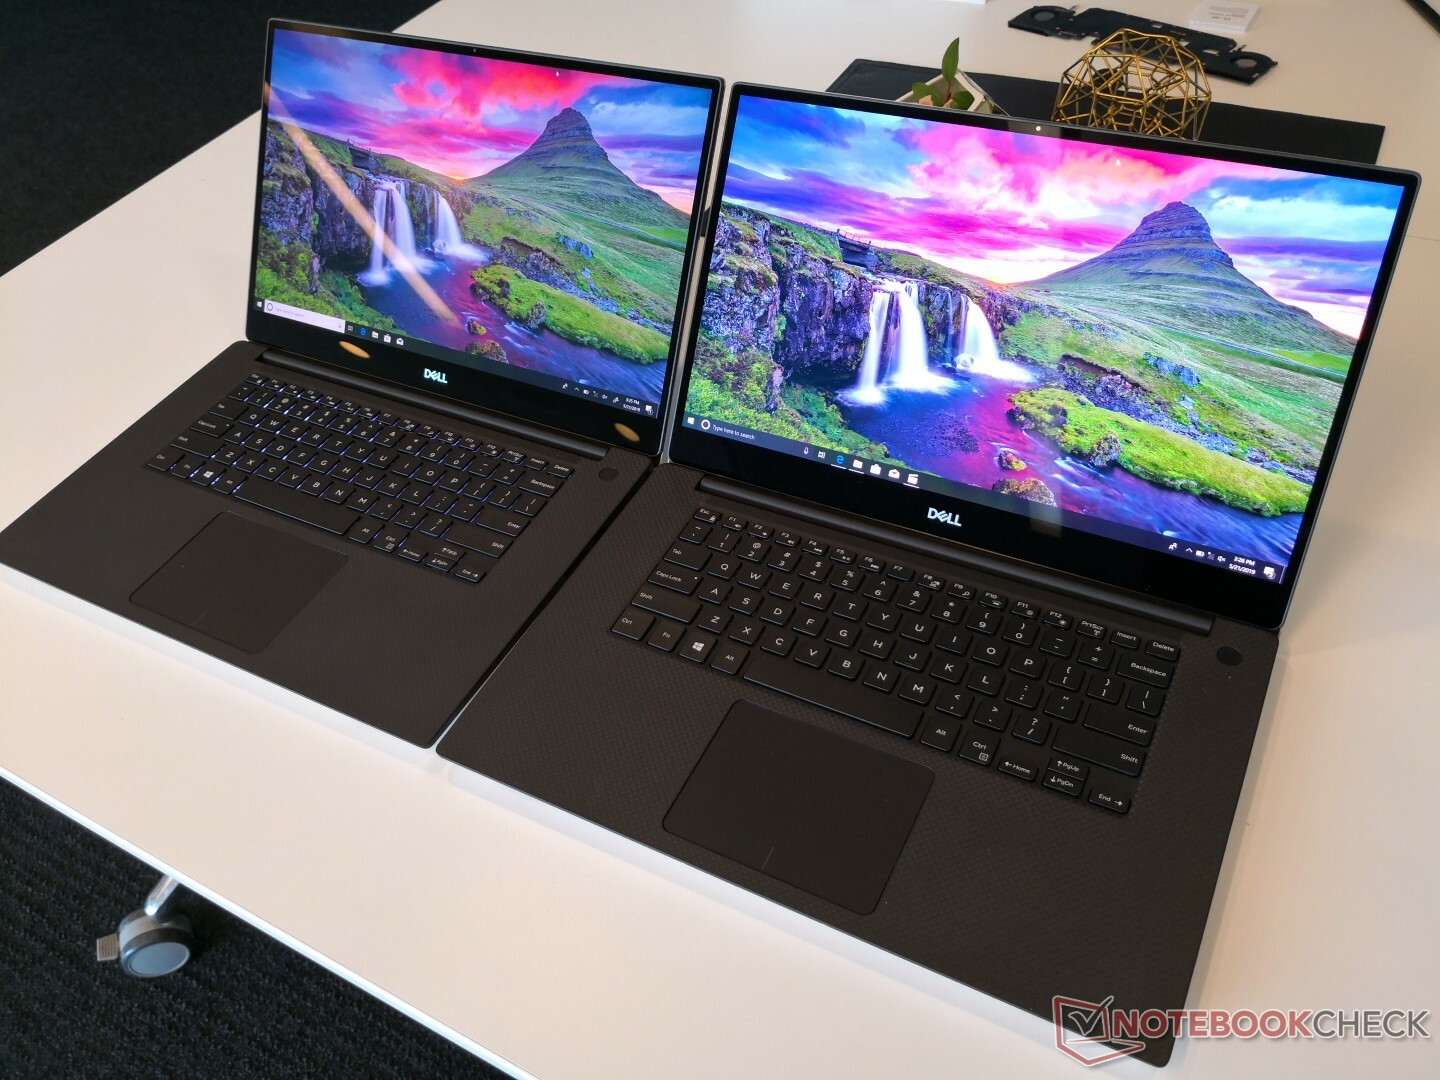 Dell Xps 13 2020 Review.Why Is It Called The Xps 15 7590 And Not The Xps 15 9580